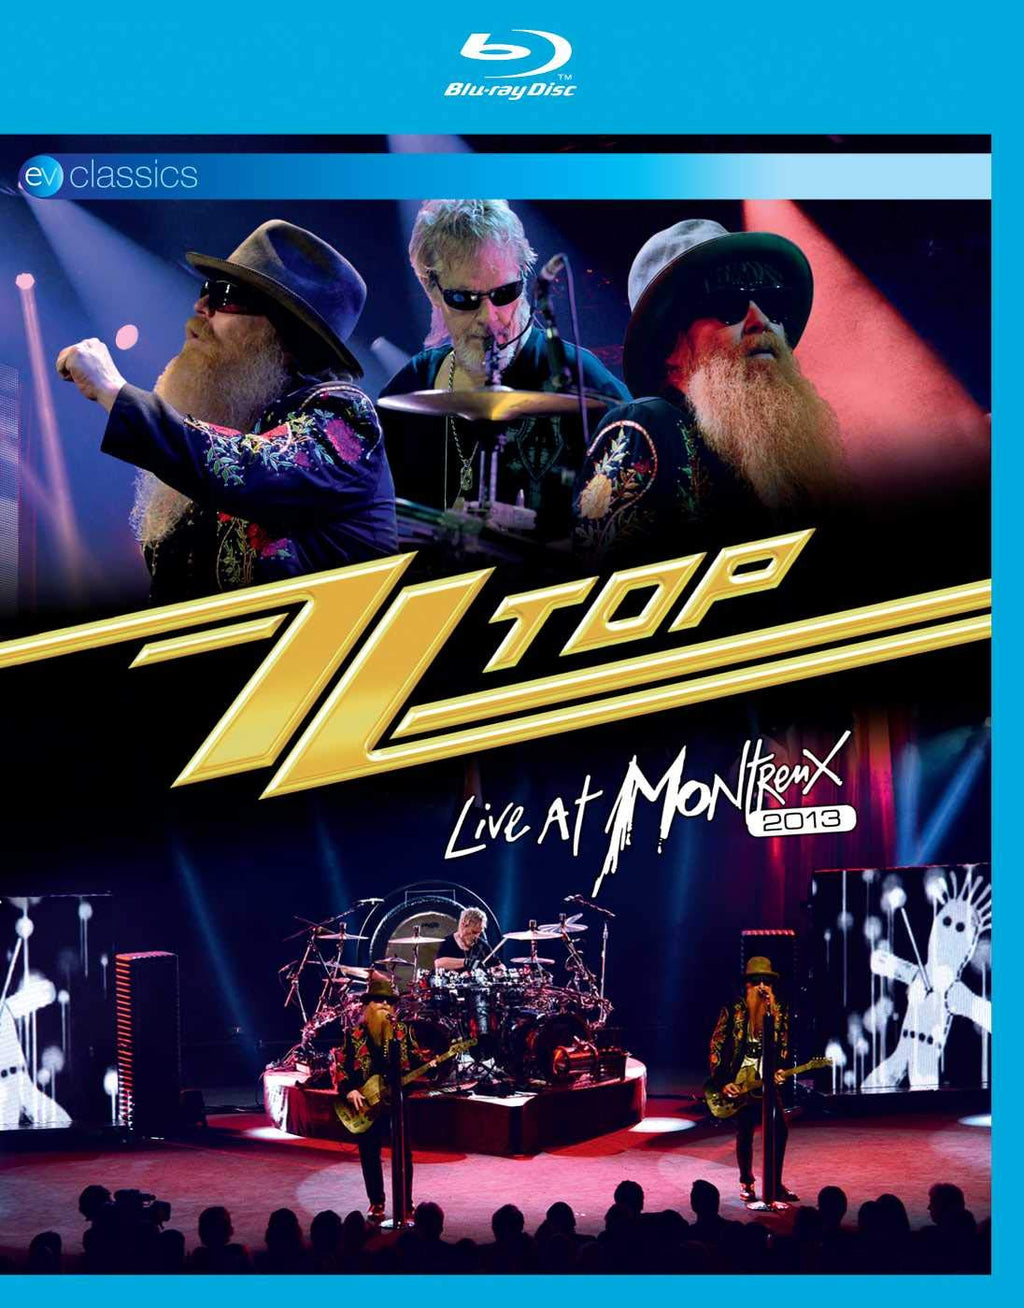 ZZ Top - Live at Montreux 2013 [Blu-ray]